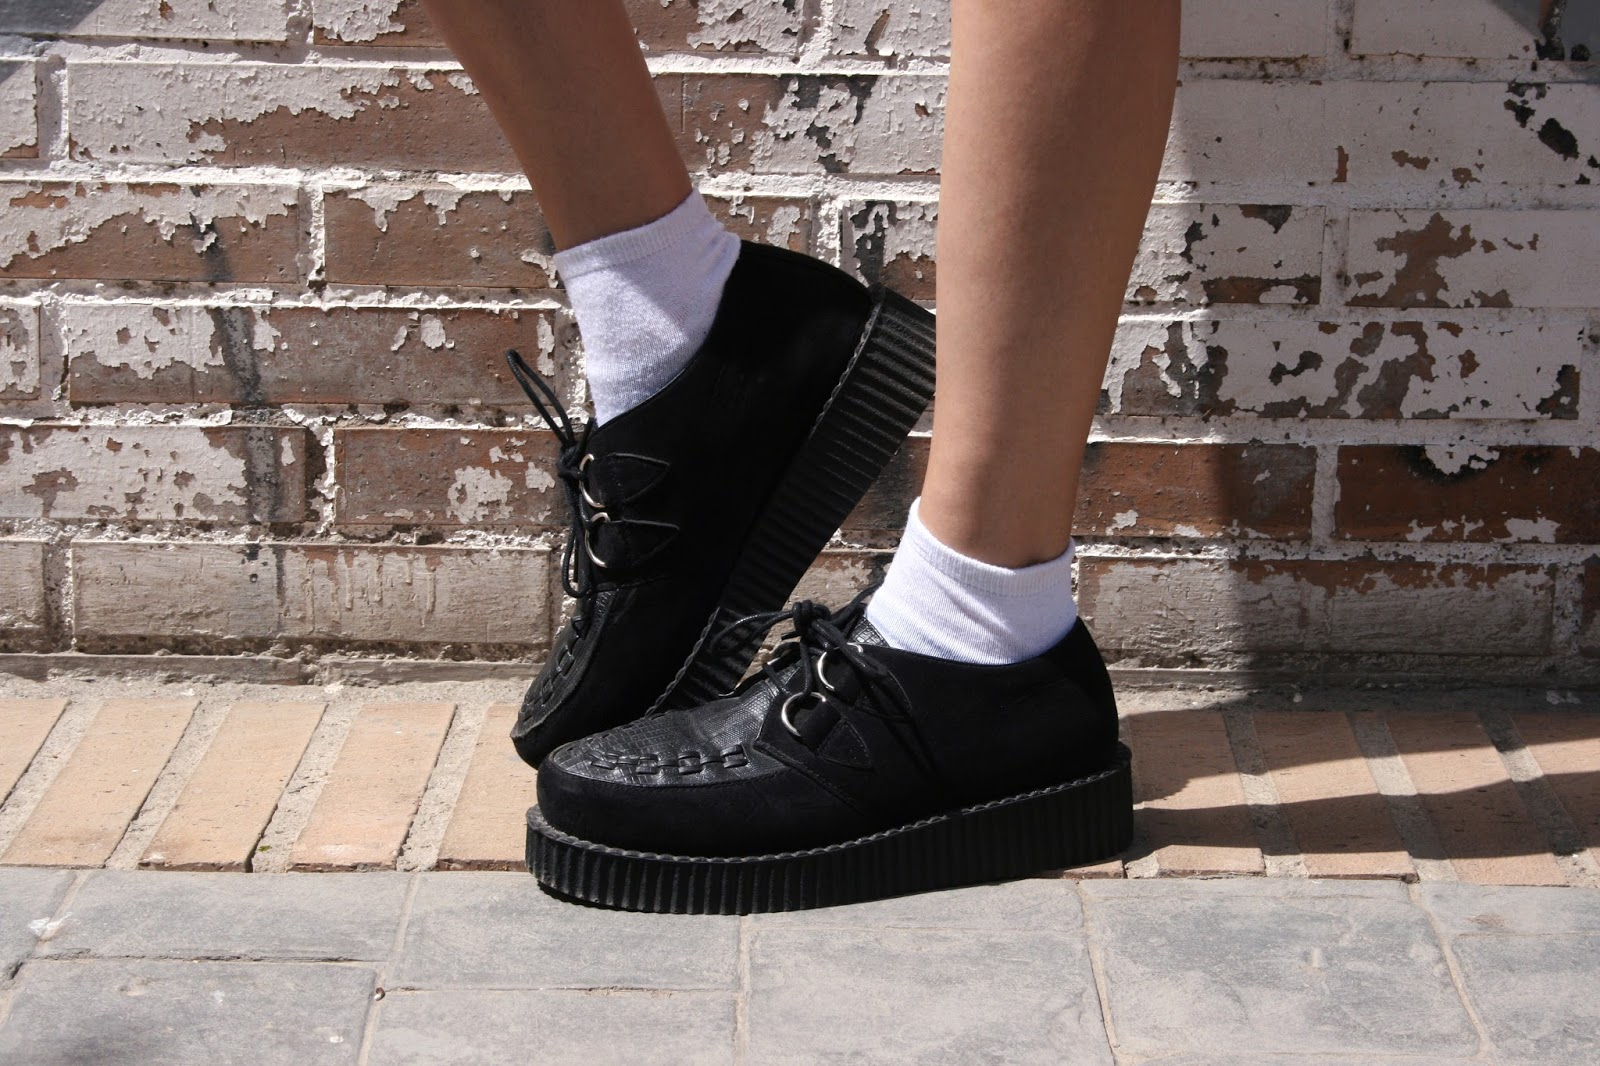 grunge-clothing-verano-creepers